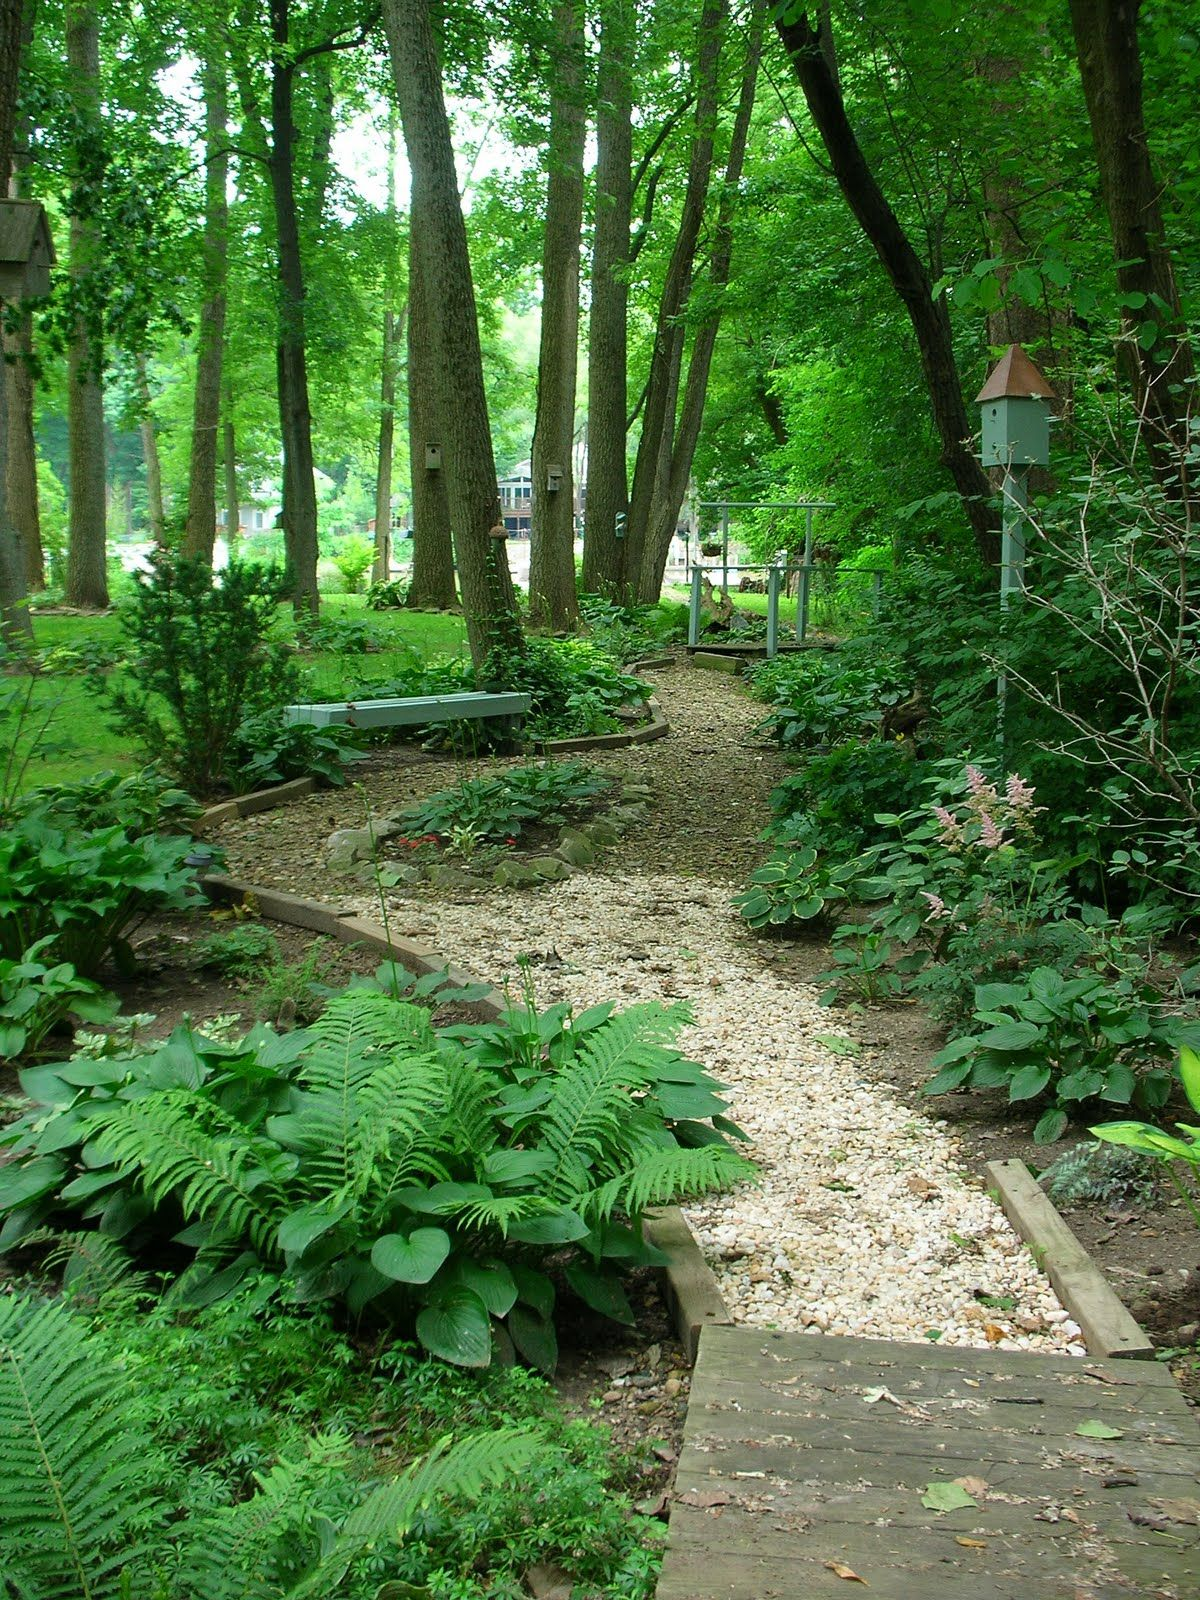 A Healthy Start How To Grow An Organic Garden Be Sure To Check Out This Helpful Article Landscaping Woodland Garden Wooded Landscaping Shade Garden